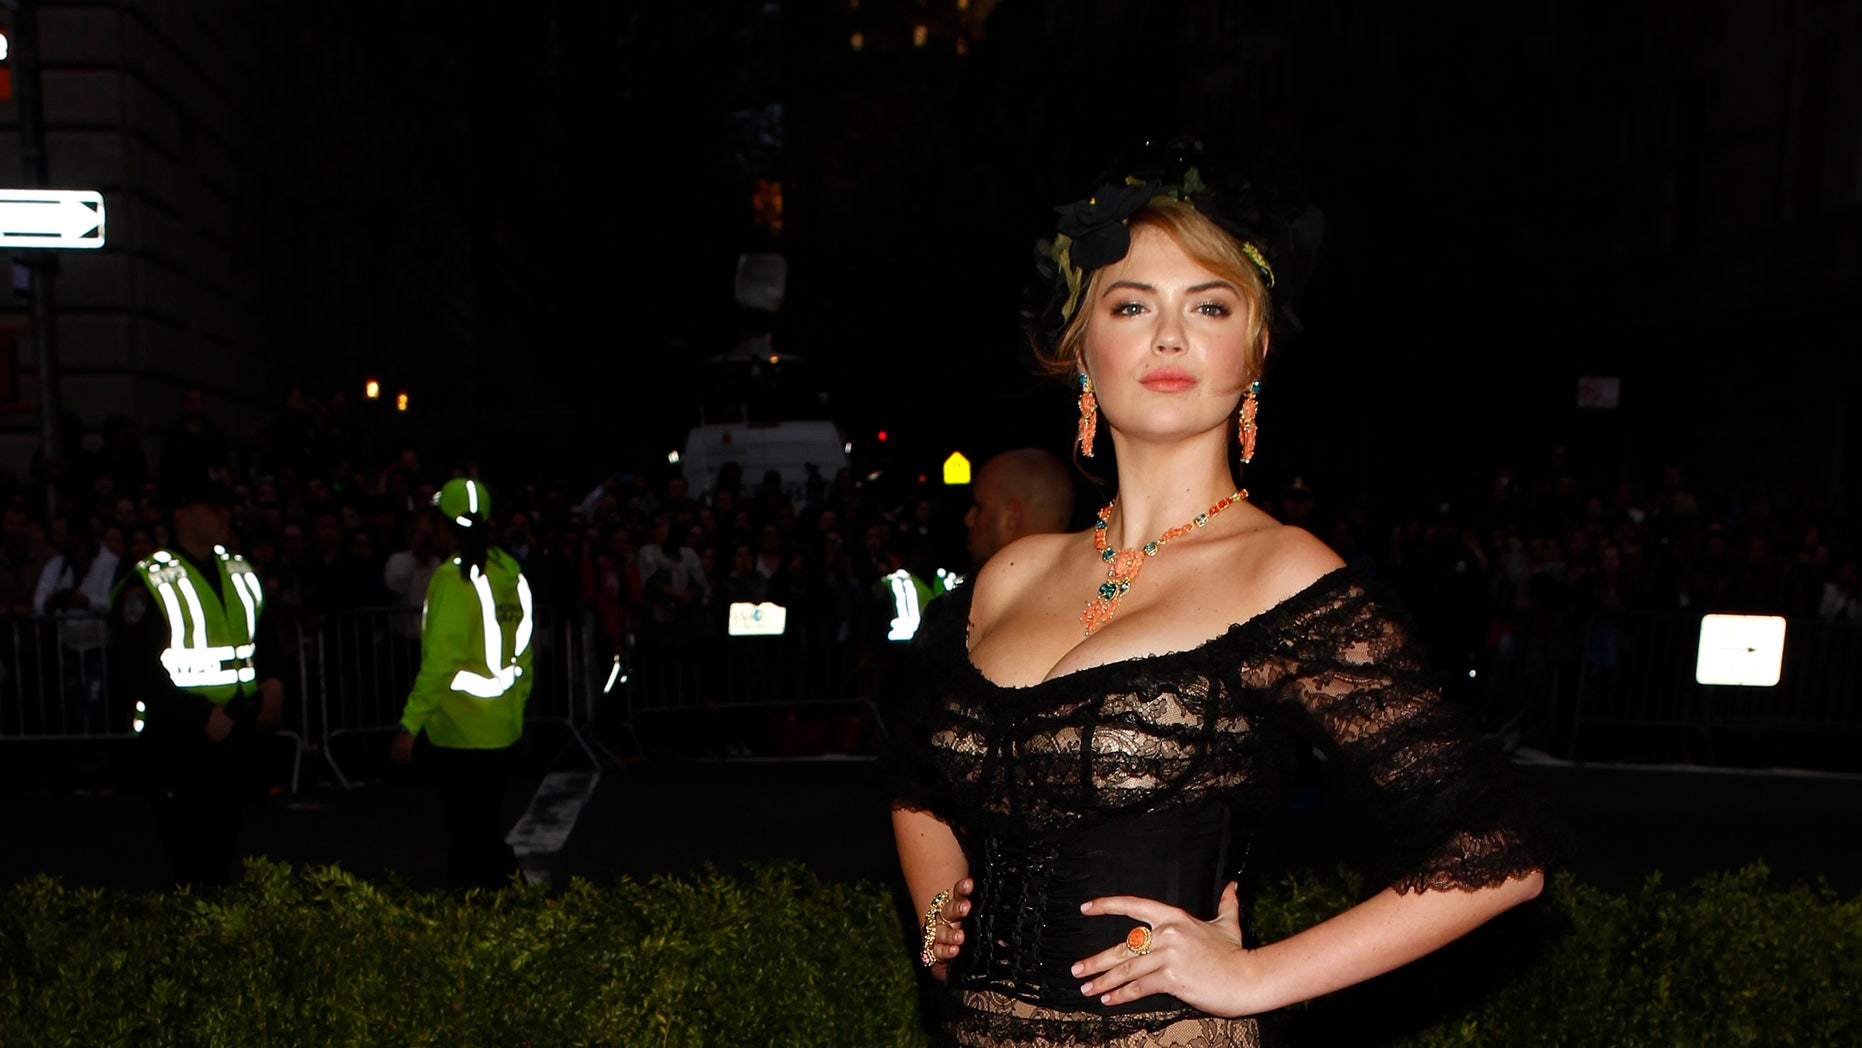 May 5. Kate Upton arrives at the Metropolitan Museum of Art Costume Institute Gala Benefit in New York.